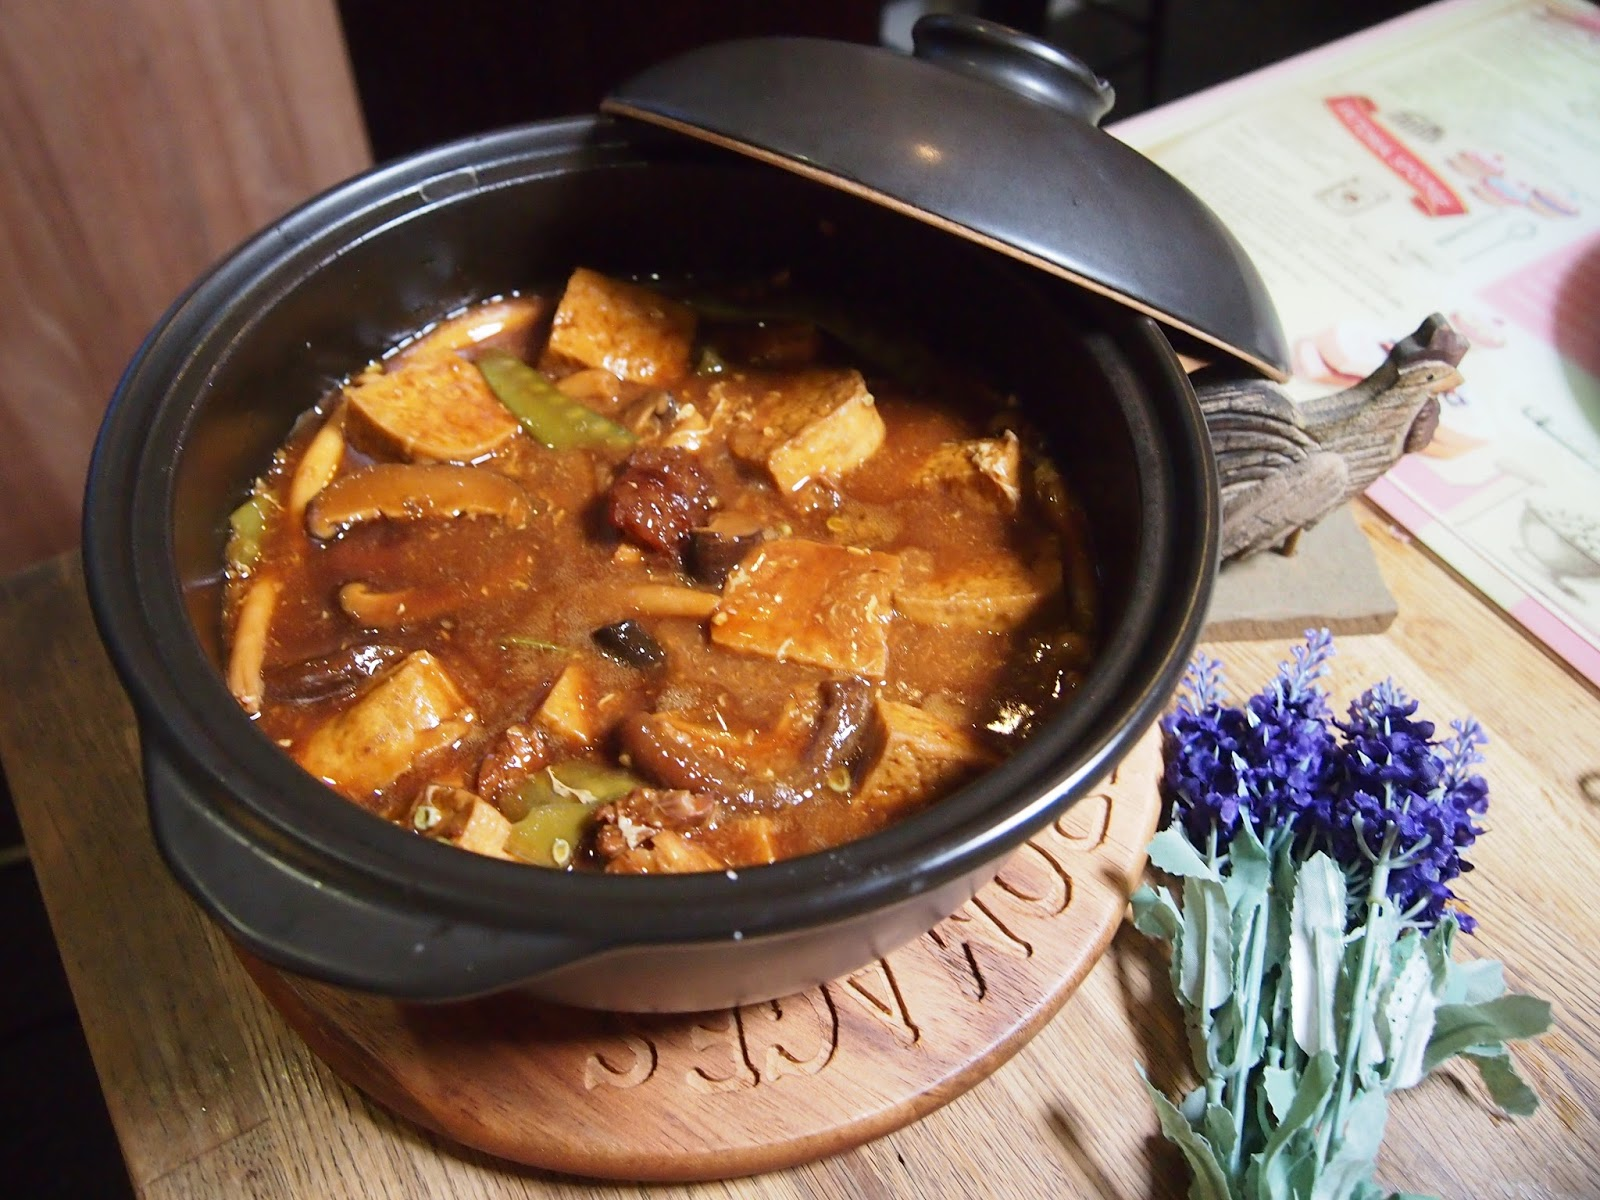 Claypot Braised Tofu with Mushrooms // 砂煲红烧豆腐